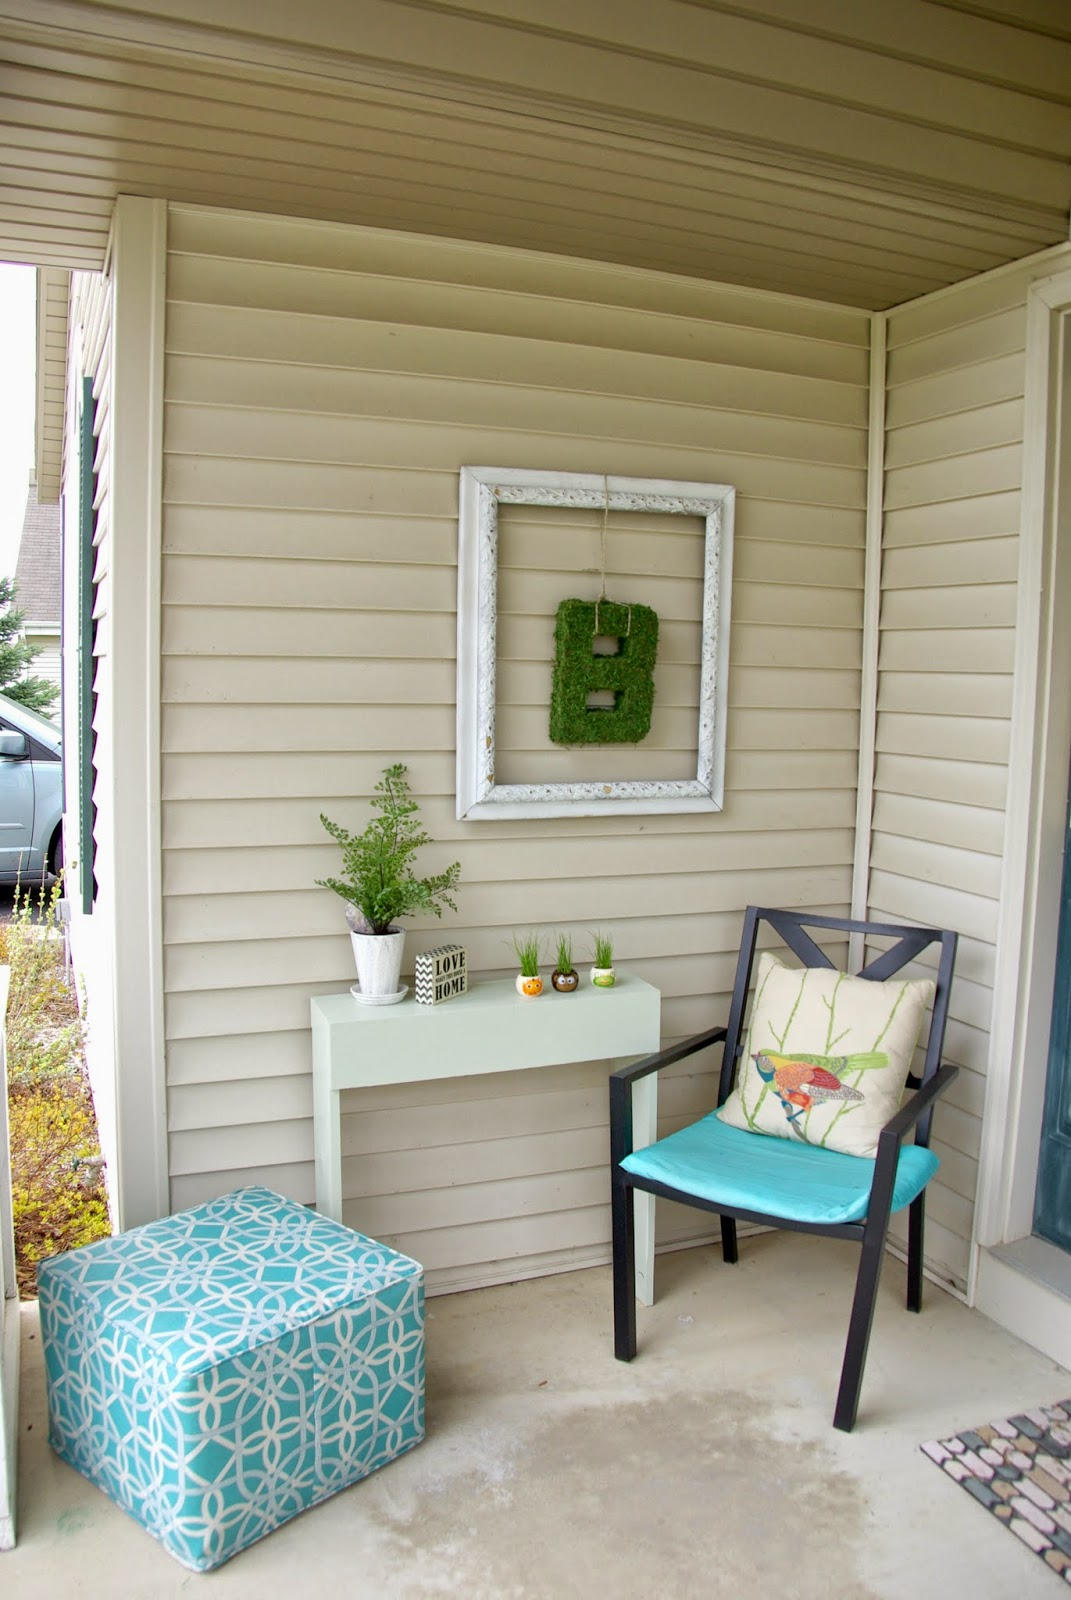 Front Porch Decorating Ideas With The Perfect Adirondack Chairs Our House Now A Home: Revamping The Front Porch • Our House Now A Home